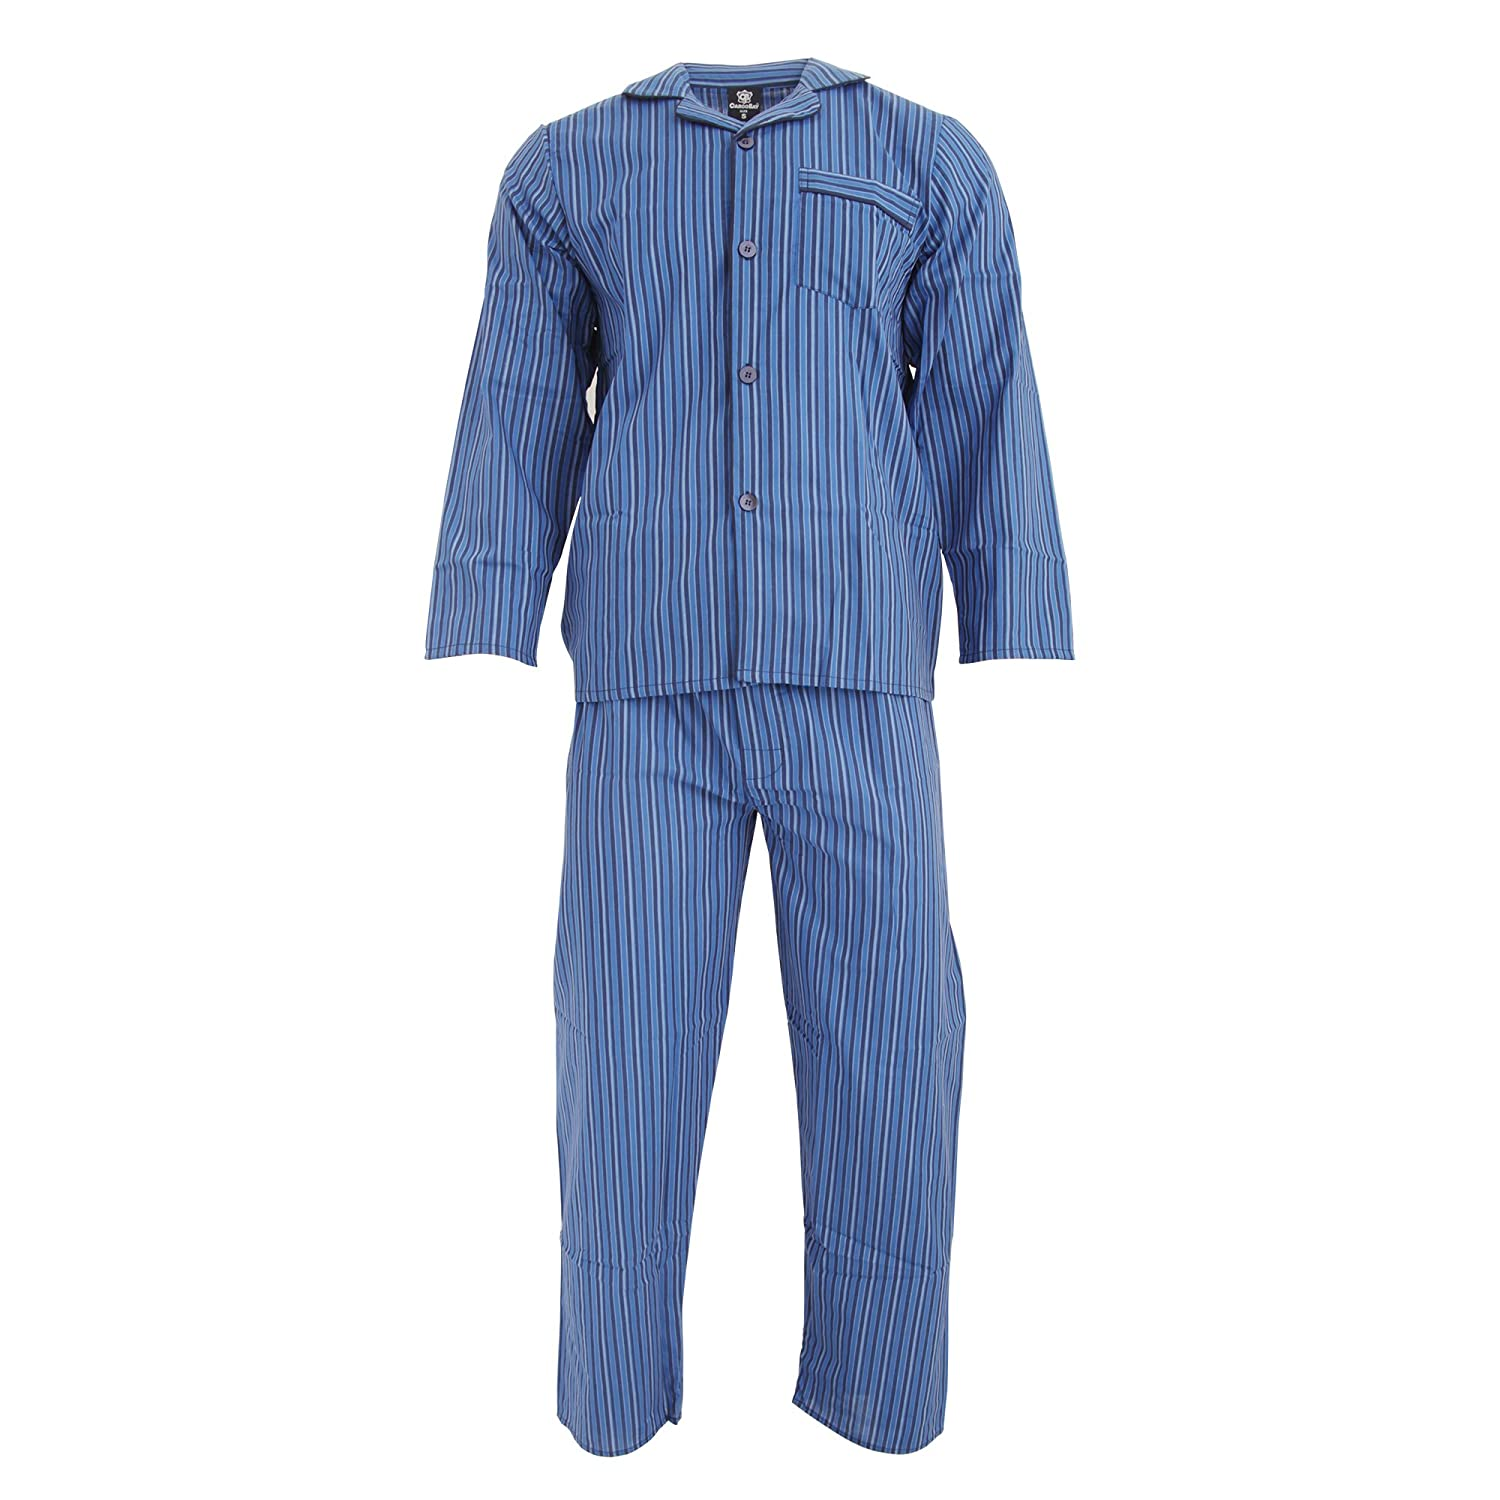 Cargo Bay Mens Woven Striped Pyjama Set